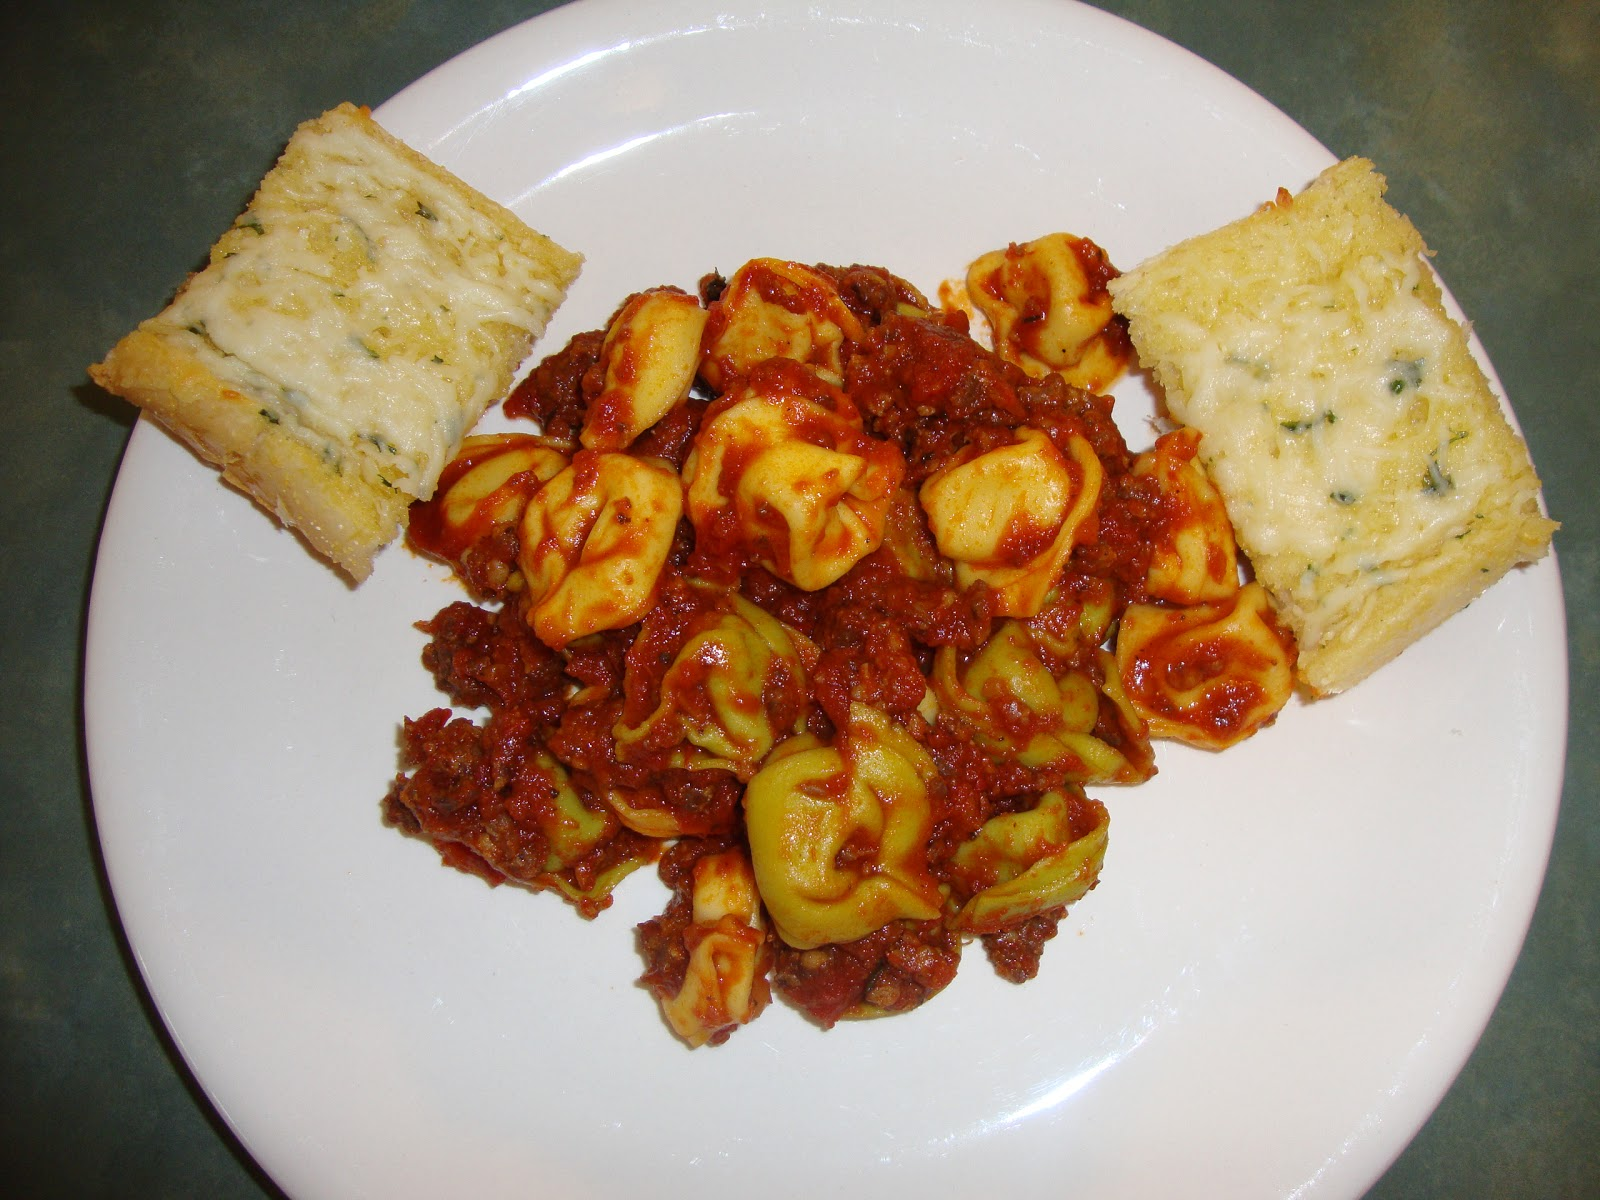 ... Slow Cooker Adventures: Cheese Tortellini with Italian Sausage Pasta